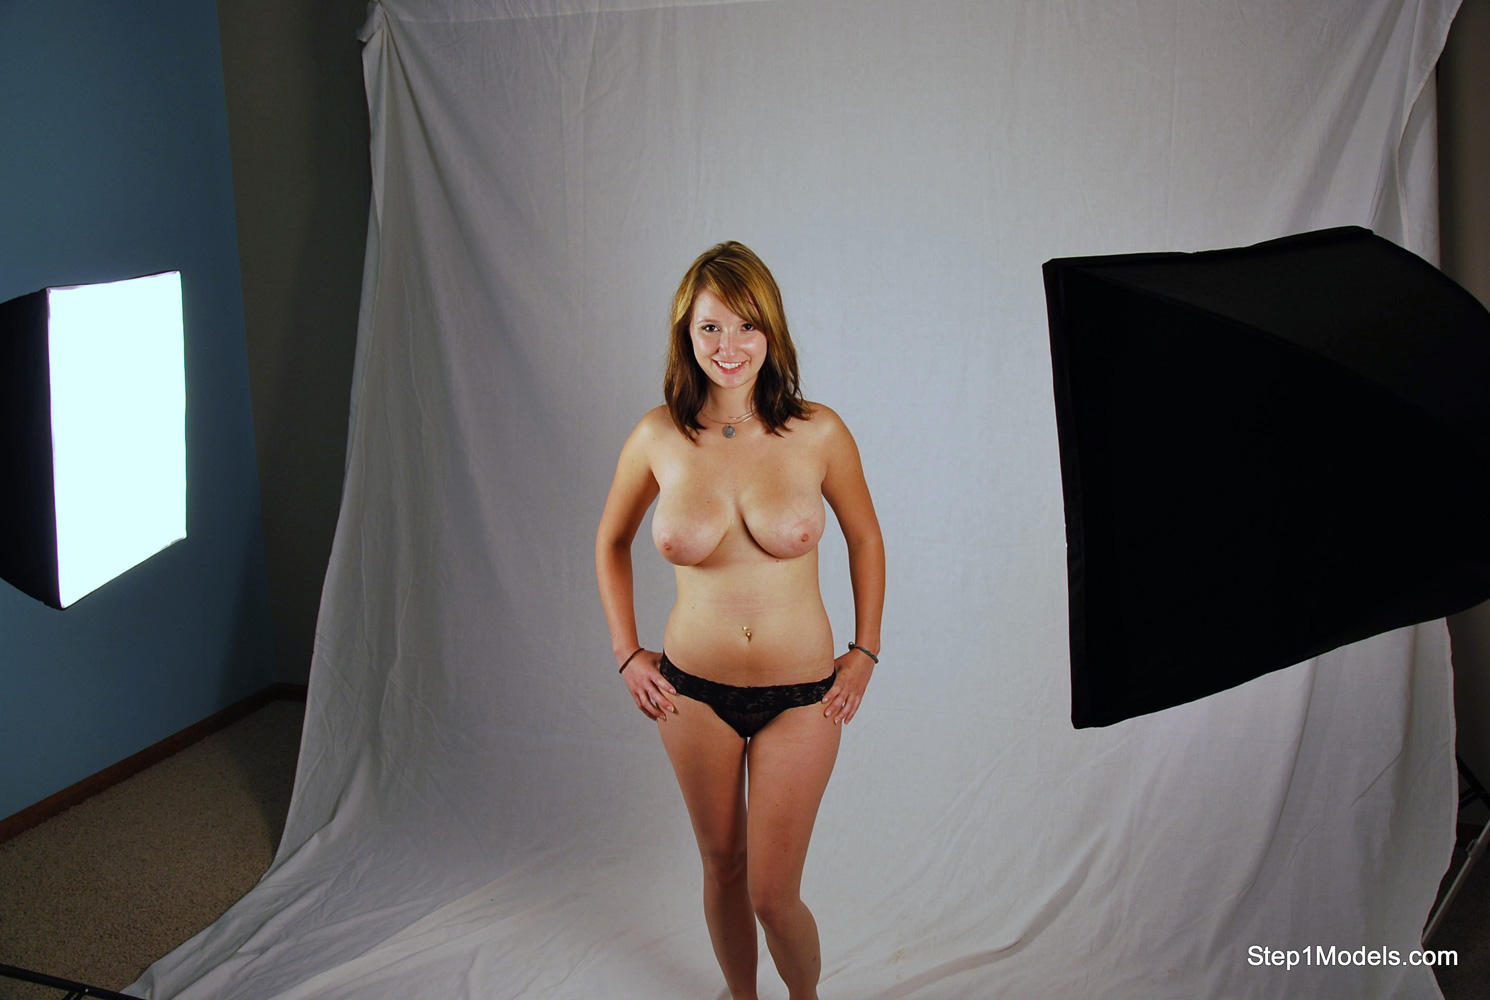 Step 1 Models features real amateur girls shooting for the first time ...